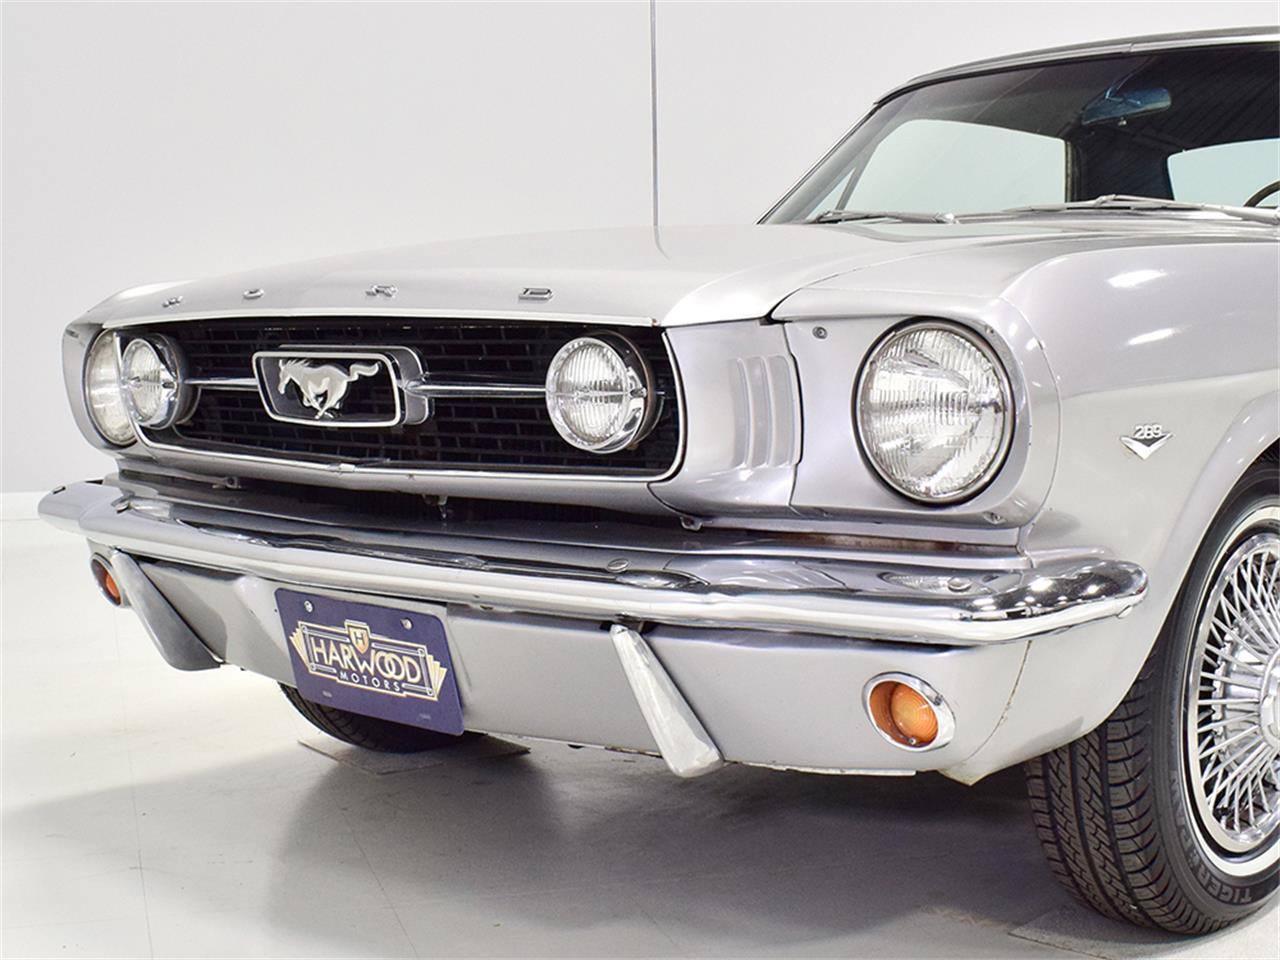 Large Picture of '66 Ford Mustang GT - $29,900.00 Offered by Harwood Motors, LTD. - Q0S5